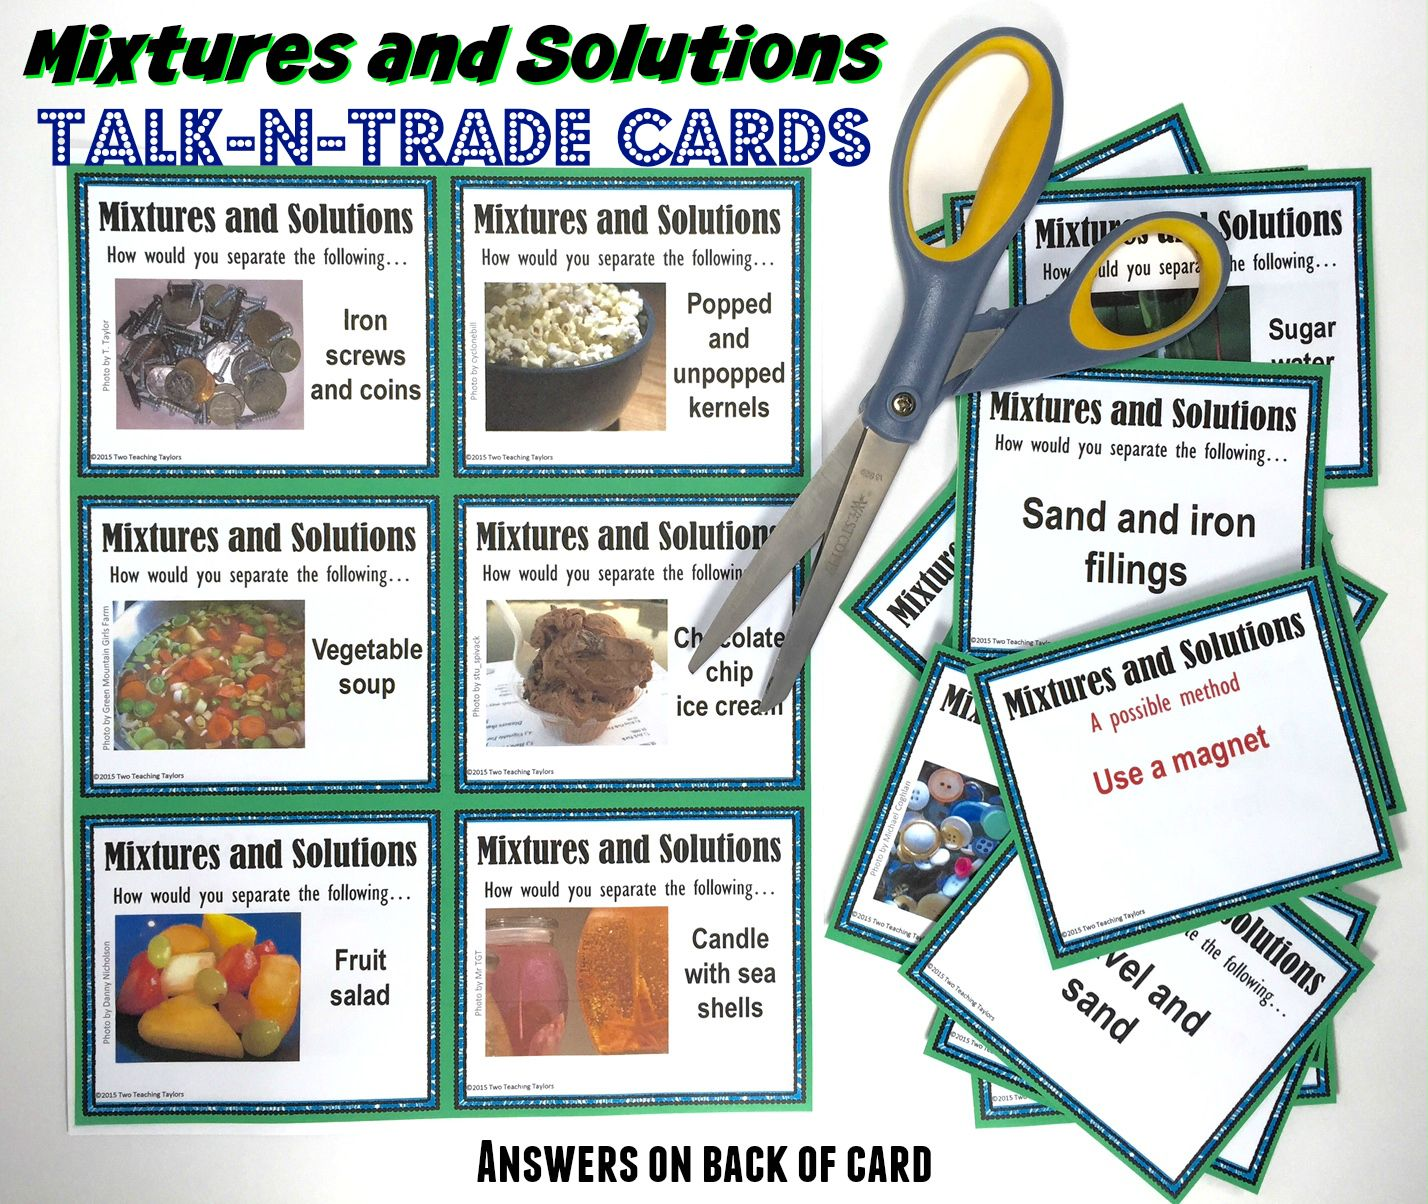 Separating Mixtures And Solutions Question Prompts Activity Print And Digital Solutions And Mixtures Separating Mixtures Task Card Activities